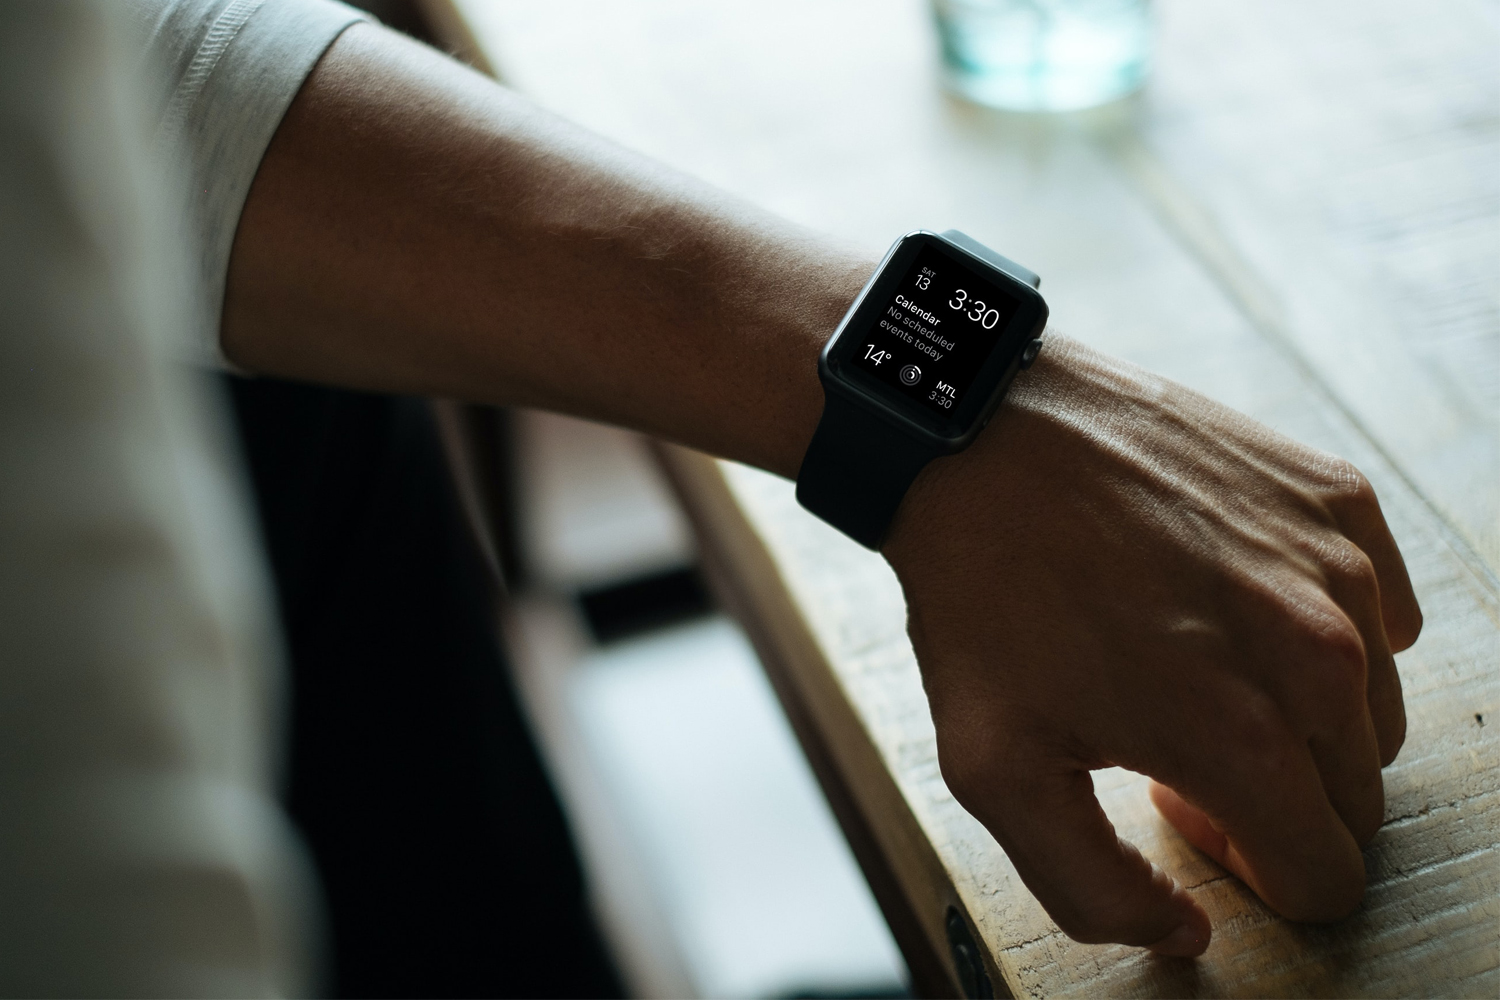 a close up picture of a hand with iwatch